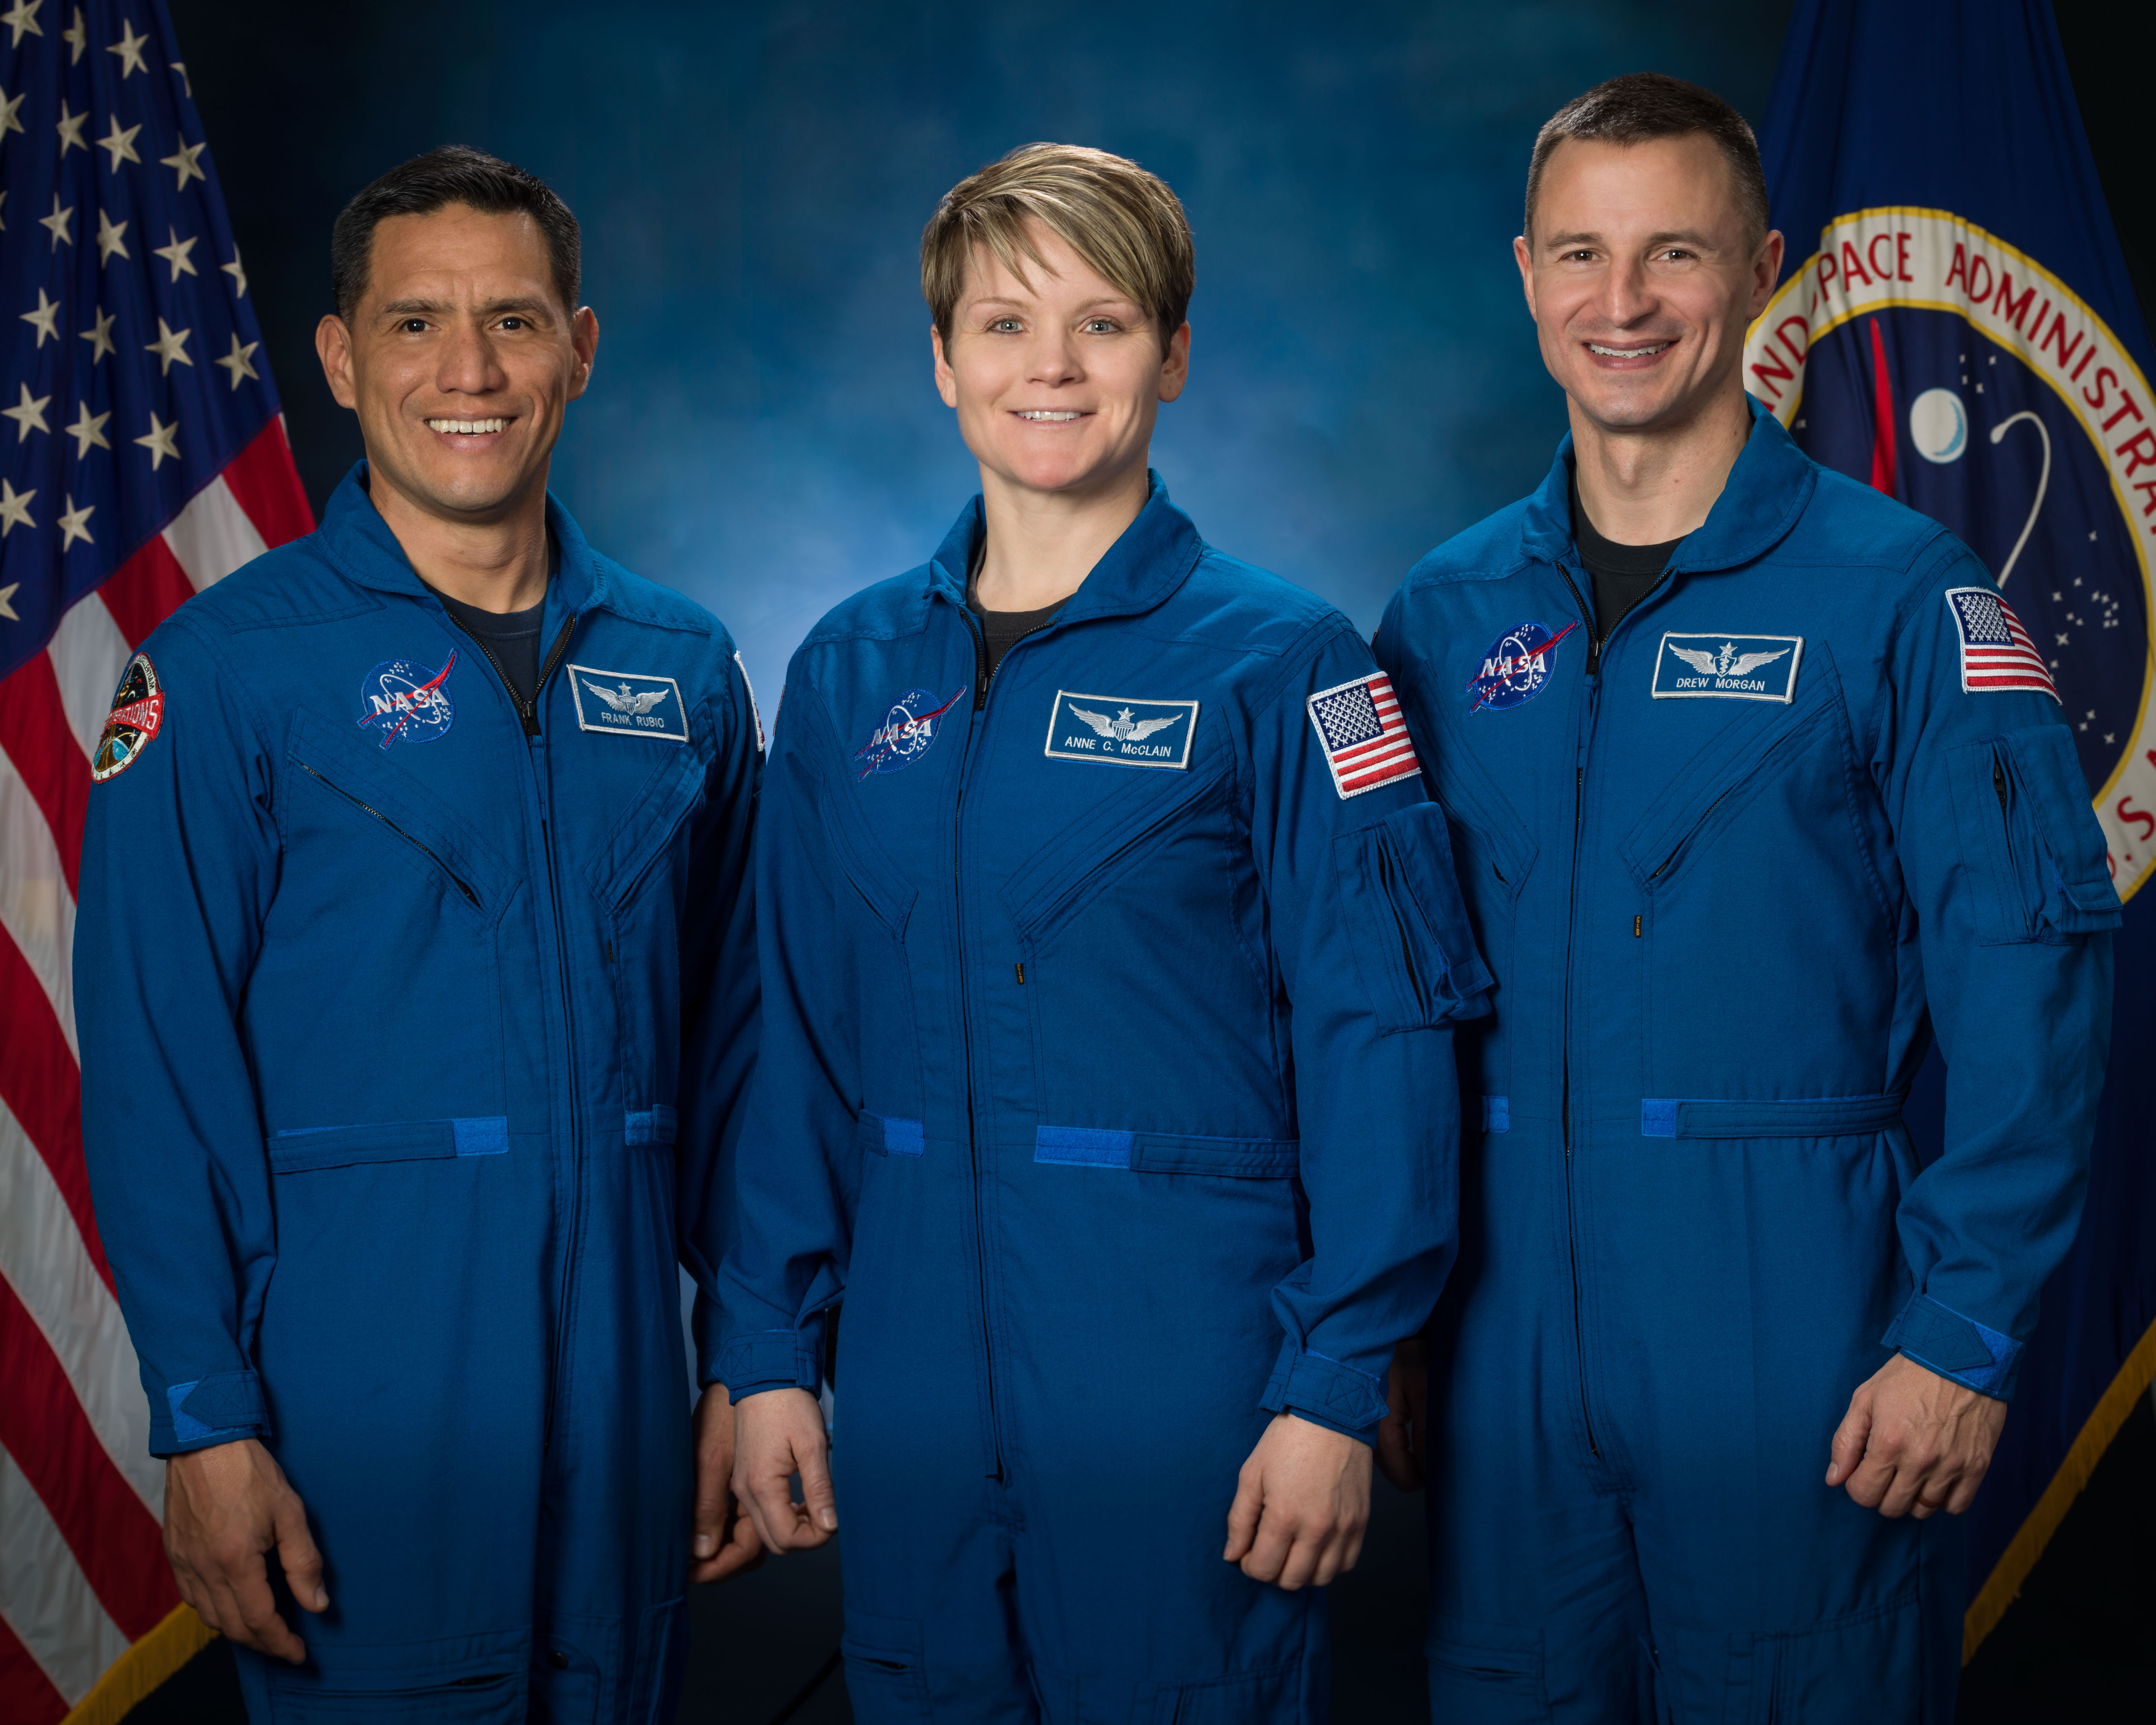 NASA Army astronauts and astronaut candidate